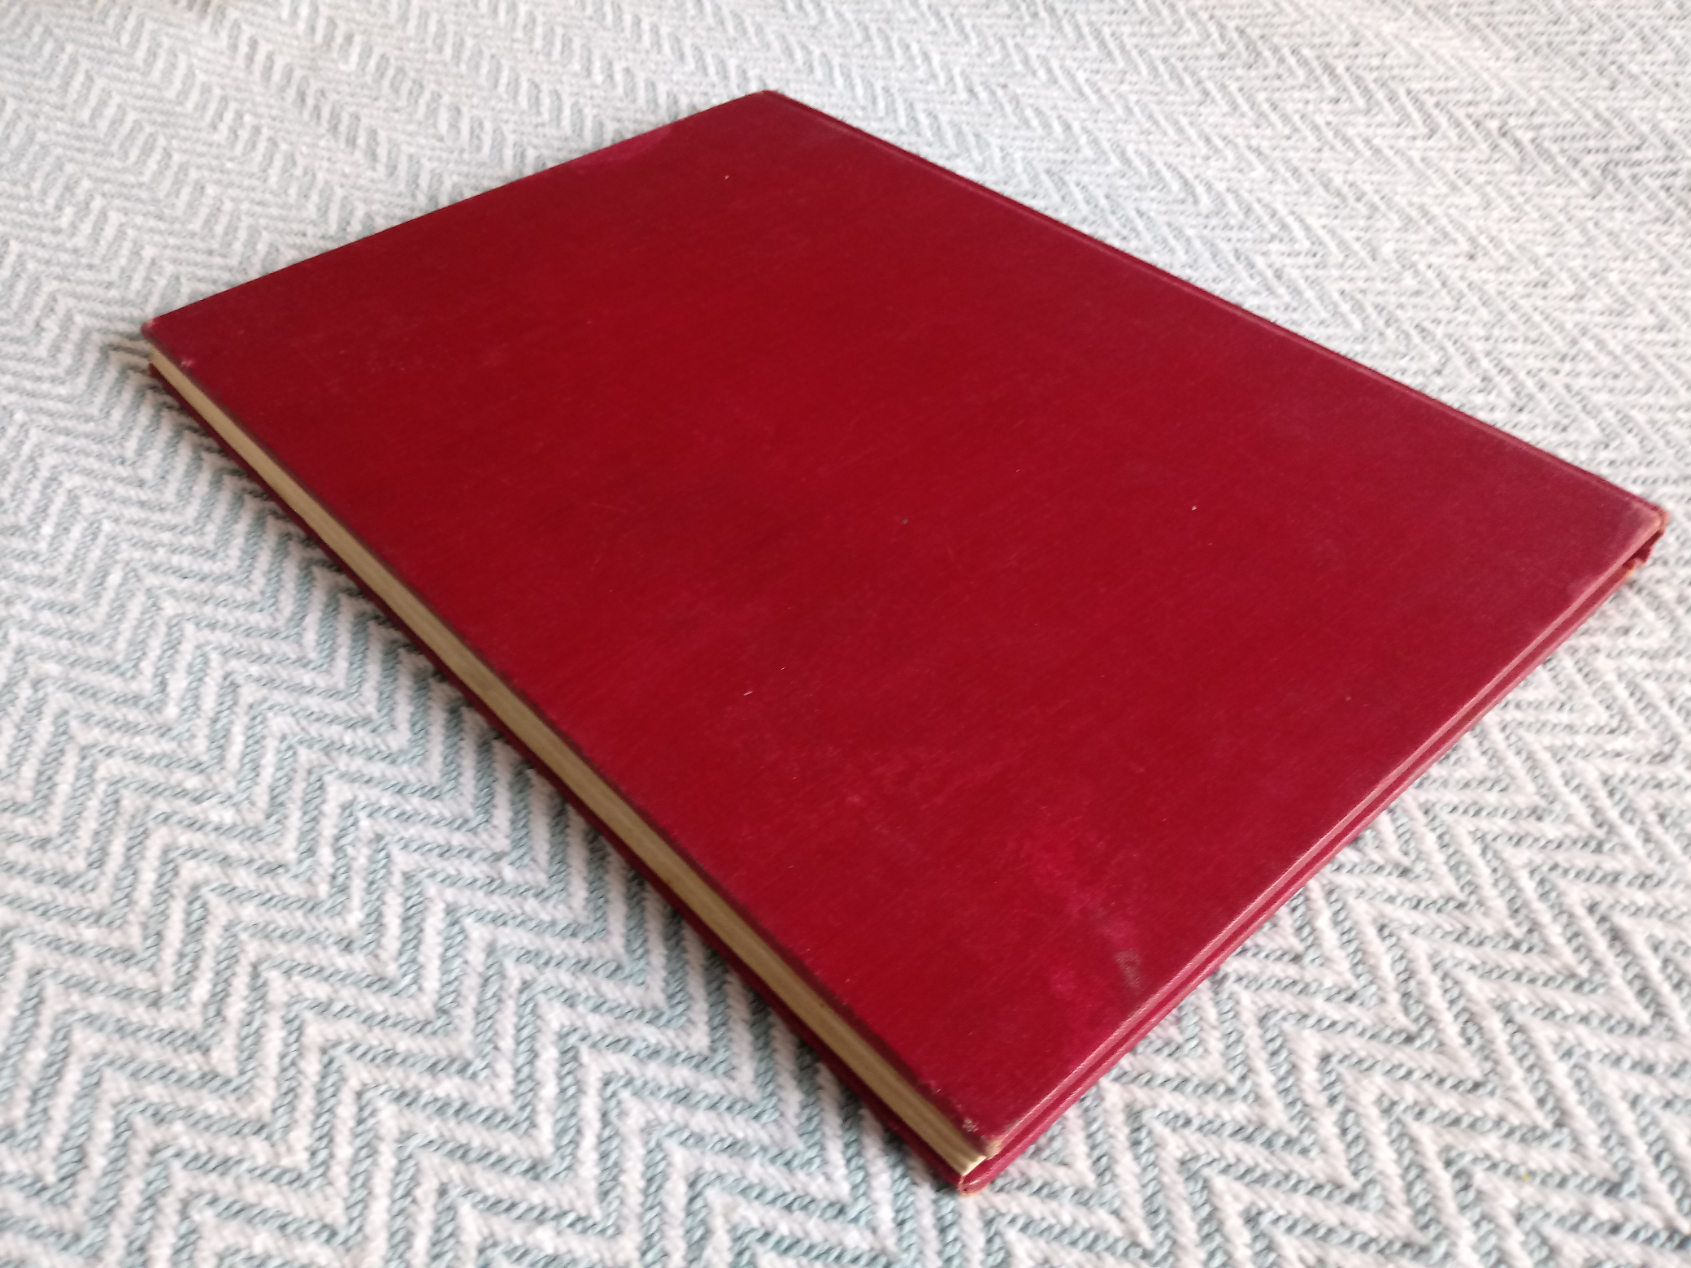 2 x hardback books published Odhams Press 1- The Coronation Of King George VI And Queen Elizabeth - Image 3 of 7